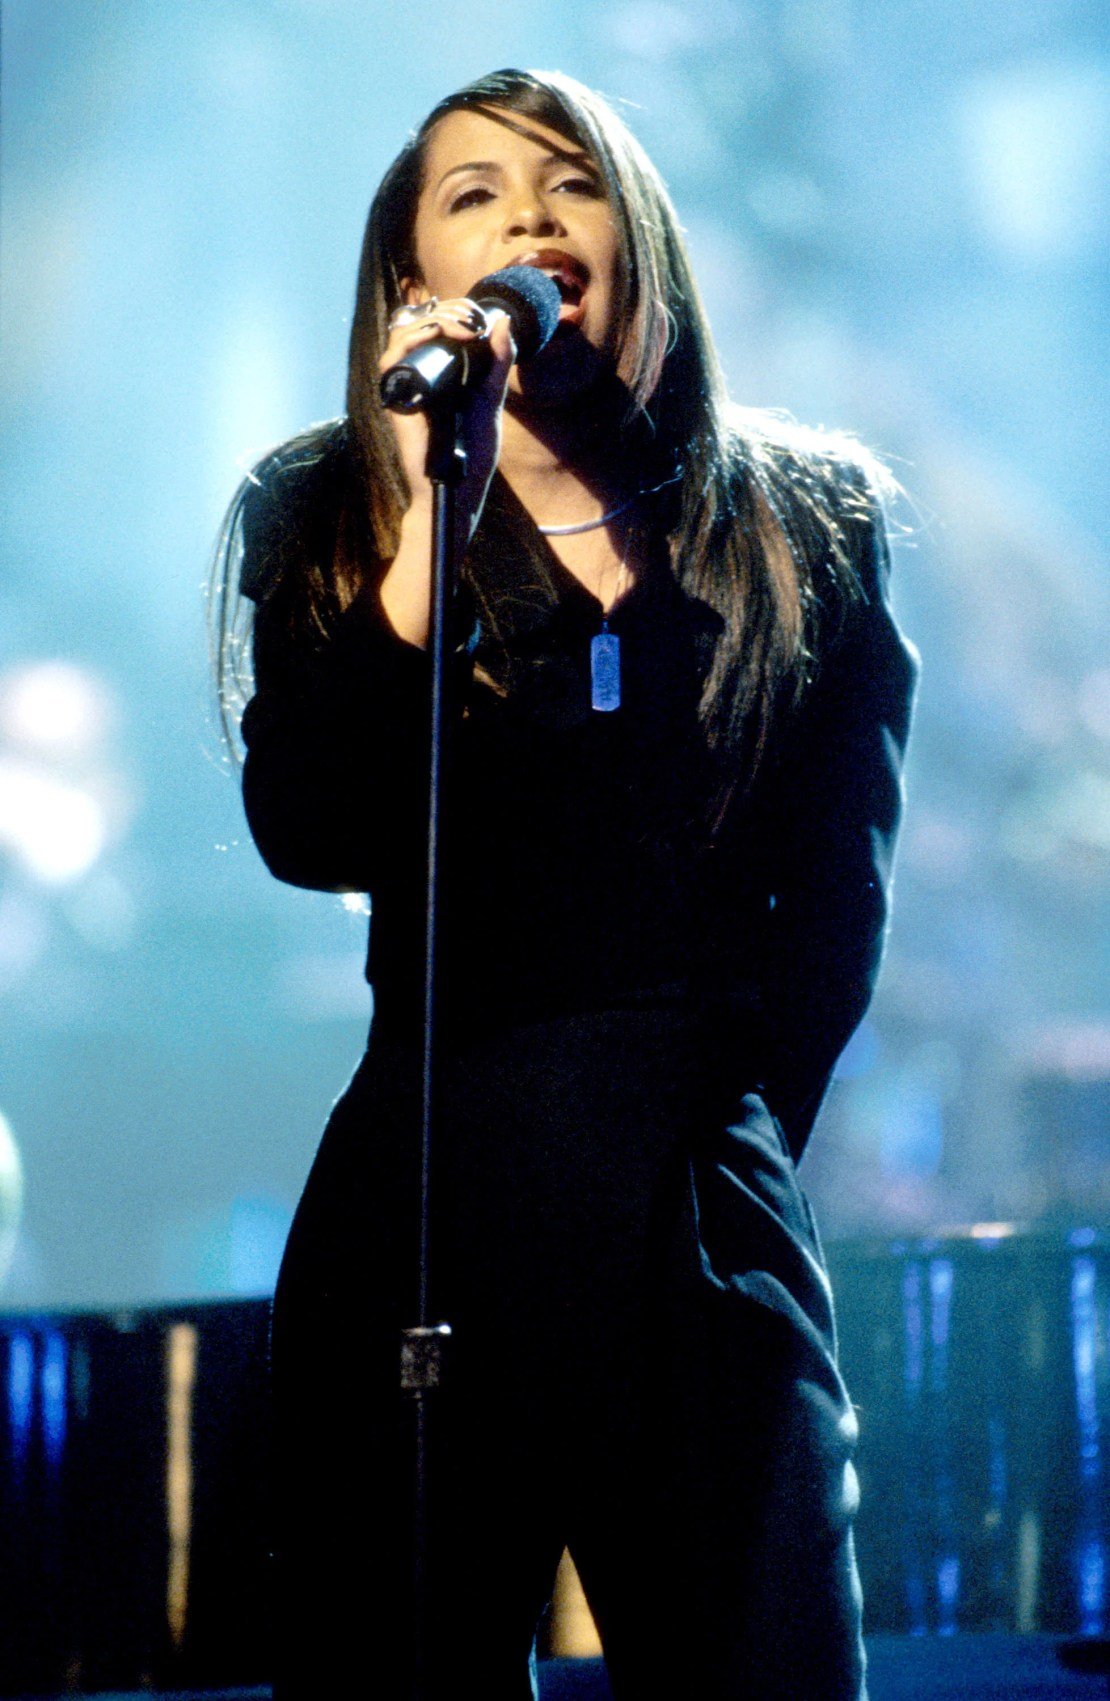 Aaliyah during TNT Presents - A Gift of Song - New York - January 1, 1997 in New York City, New York, United States. (Photo by KMazur/WireImage)